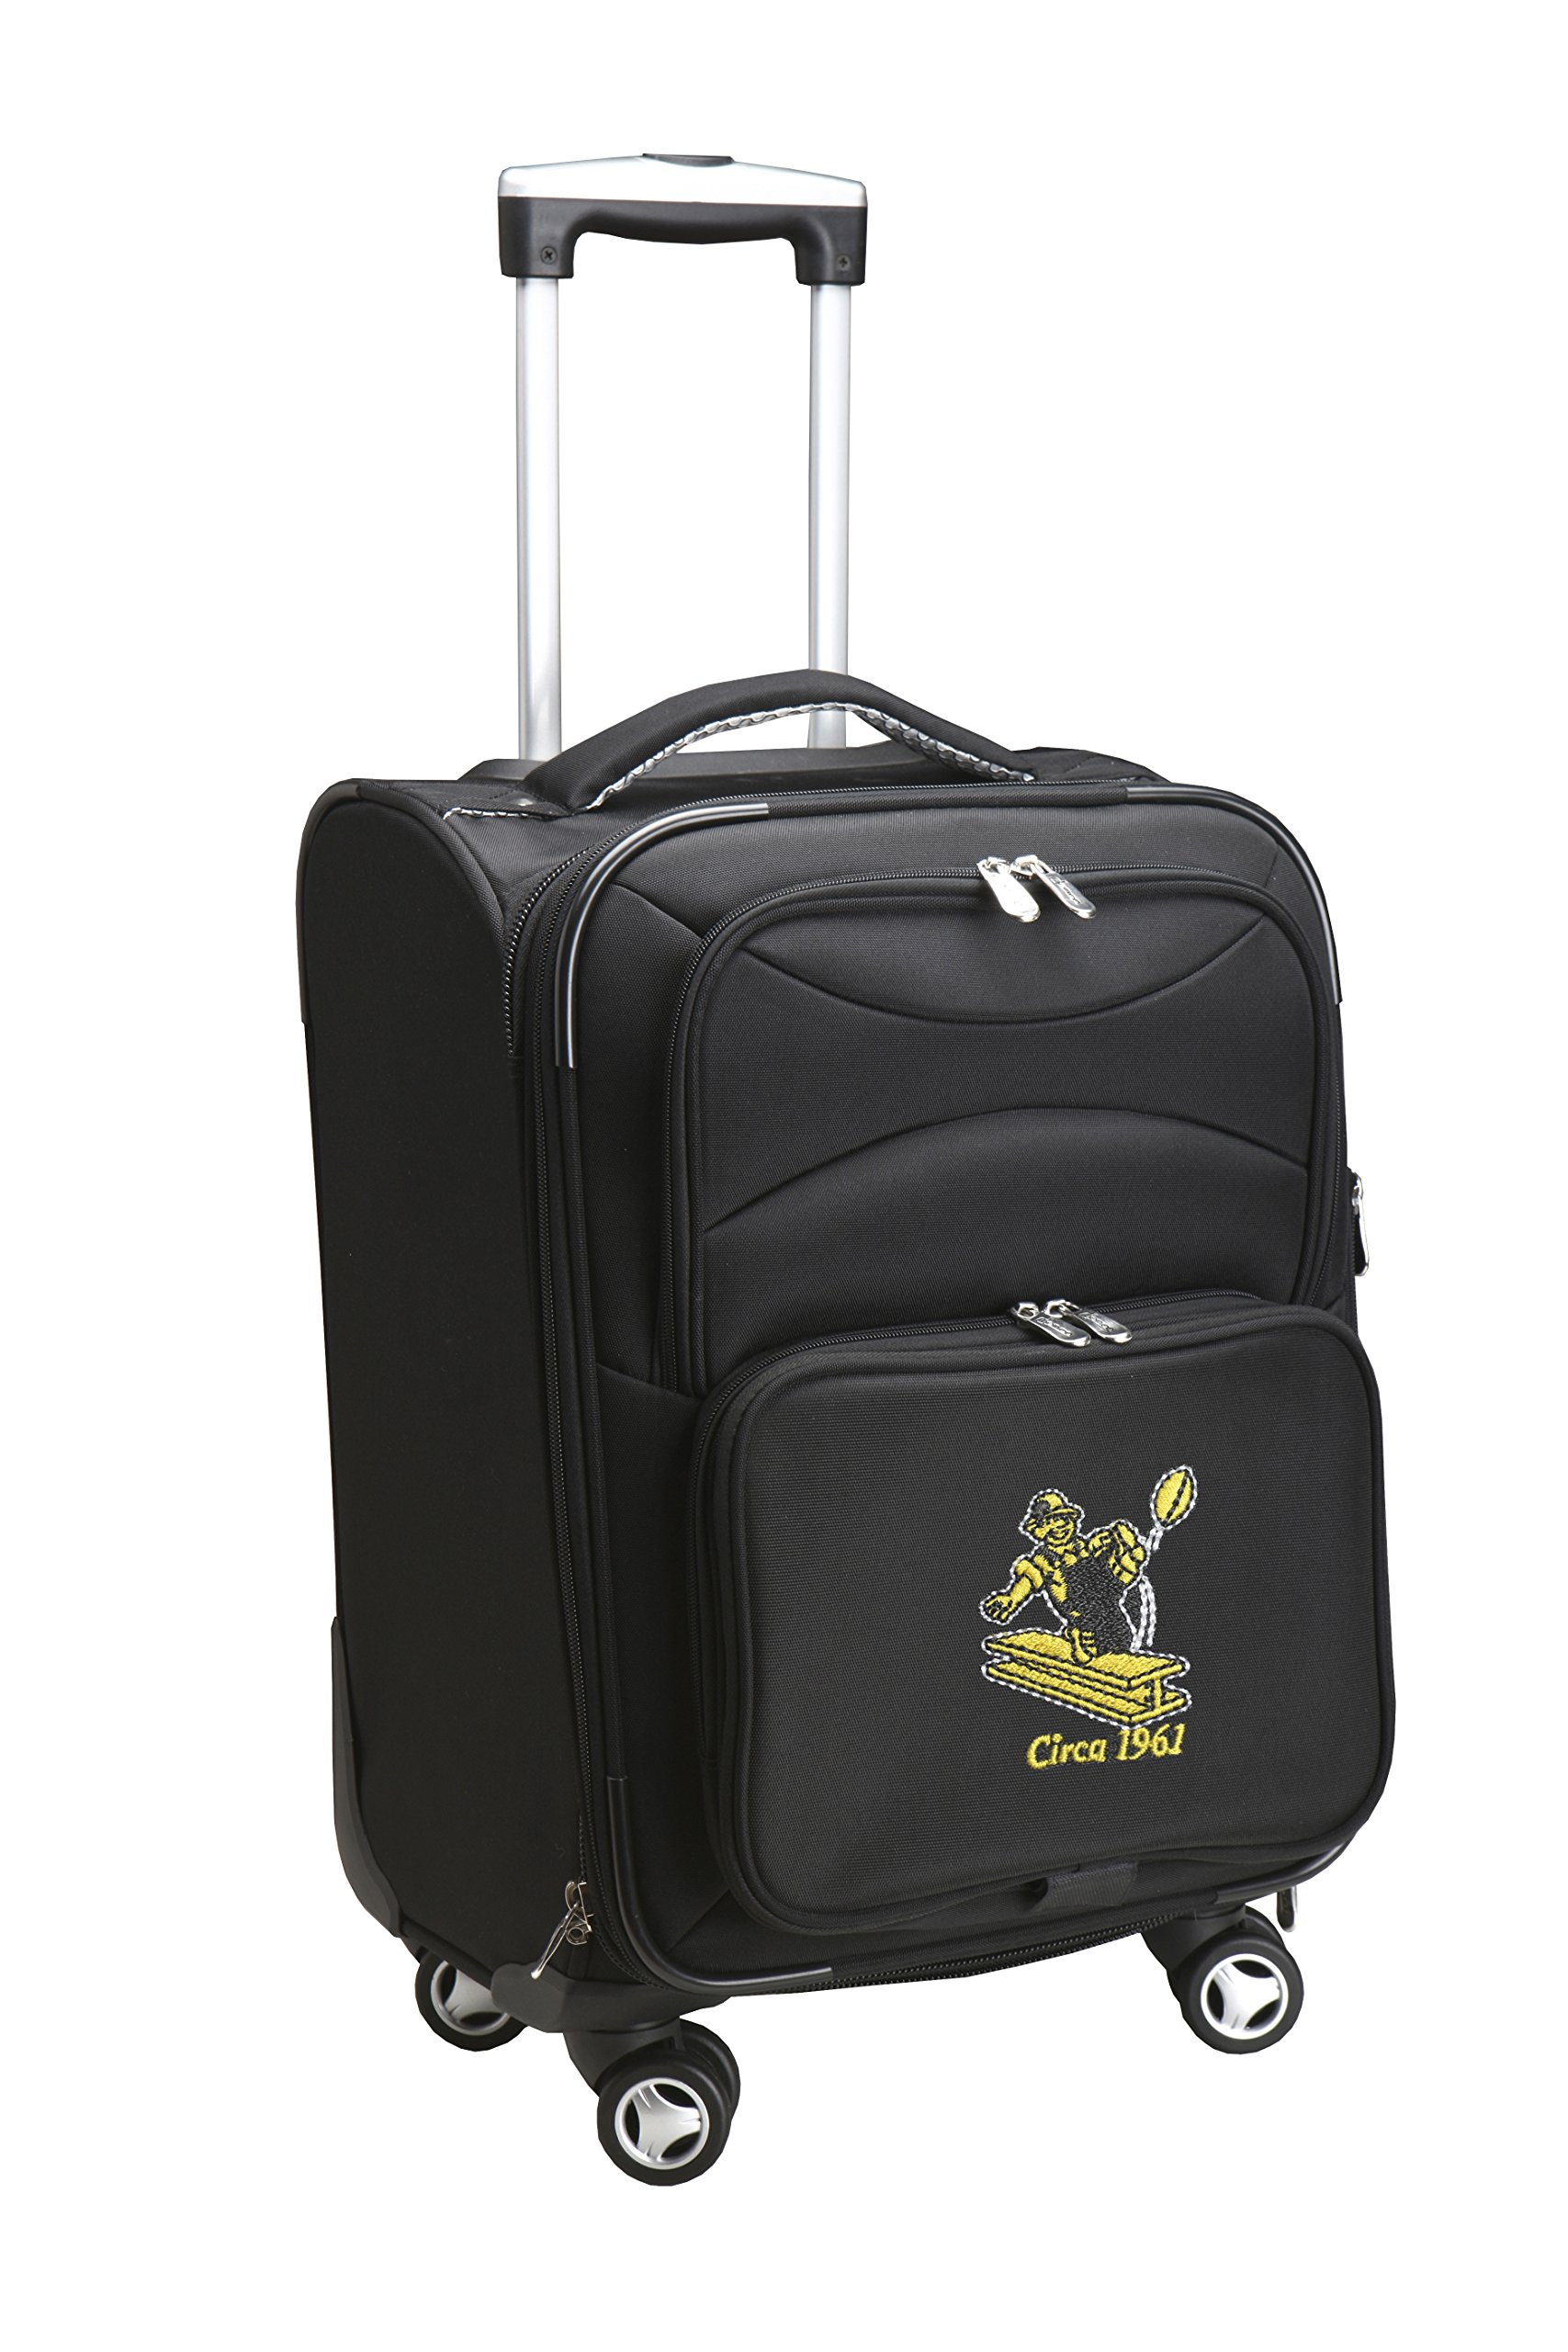 NFL Pittsburgh Steelers Upright Domestic Carry-On Spinner, 20-Inch, Black